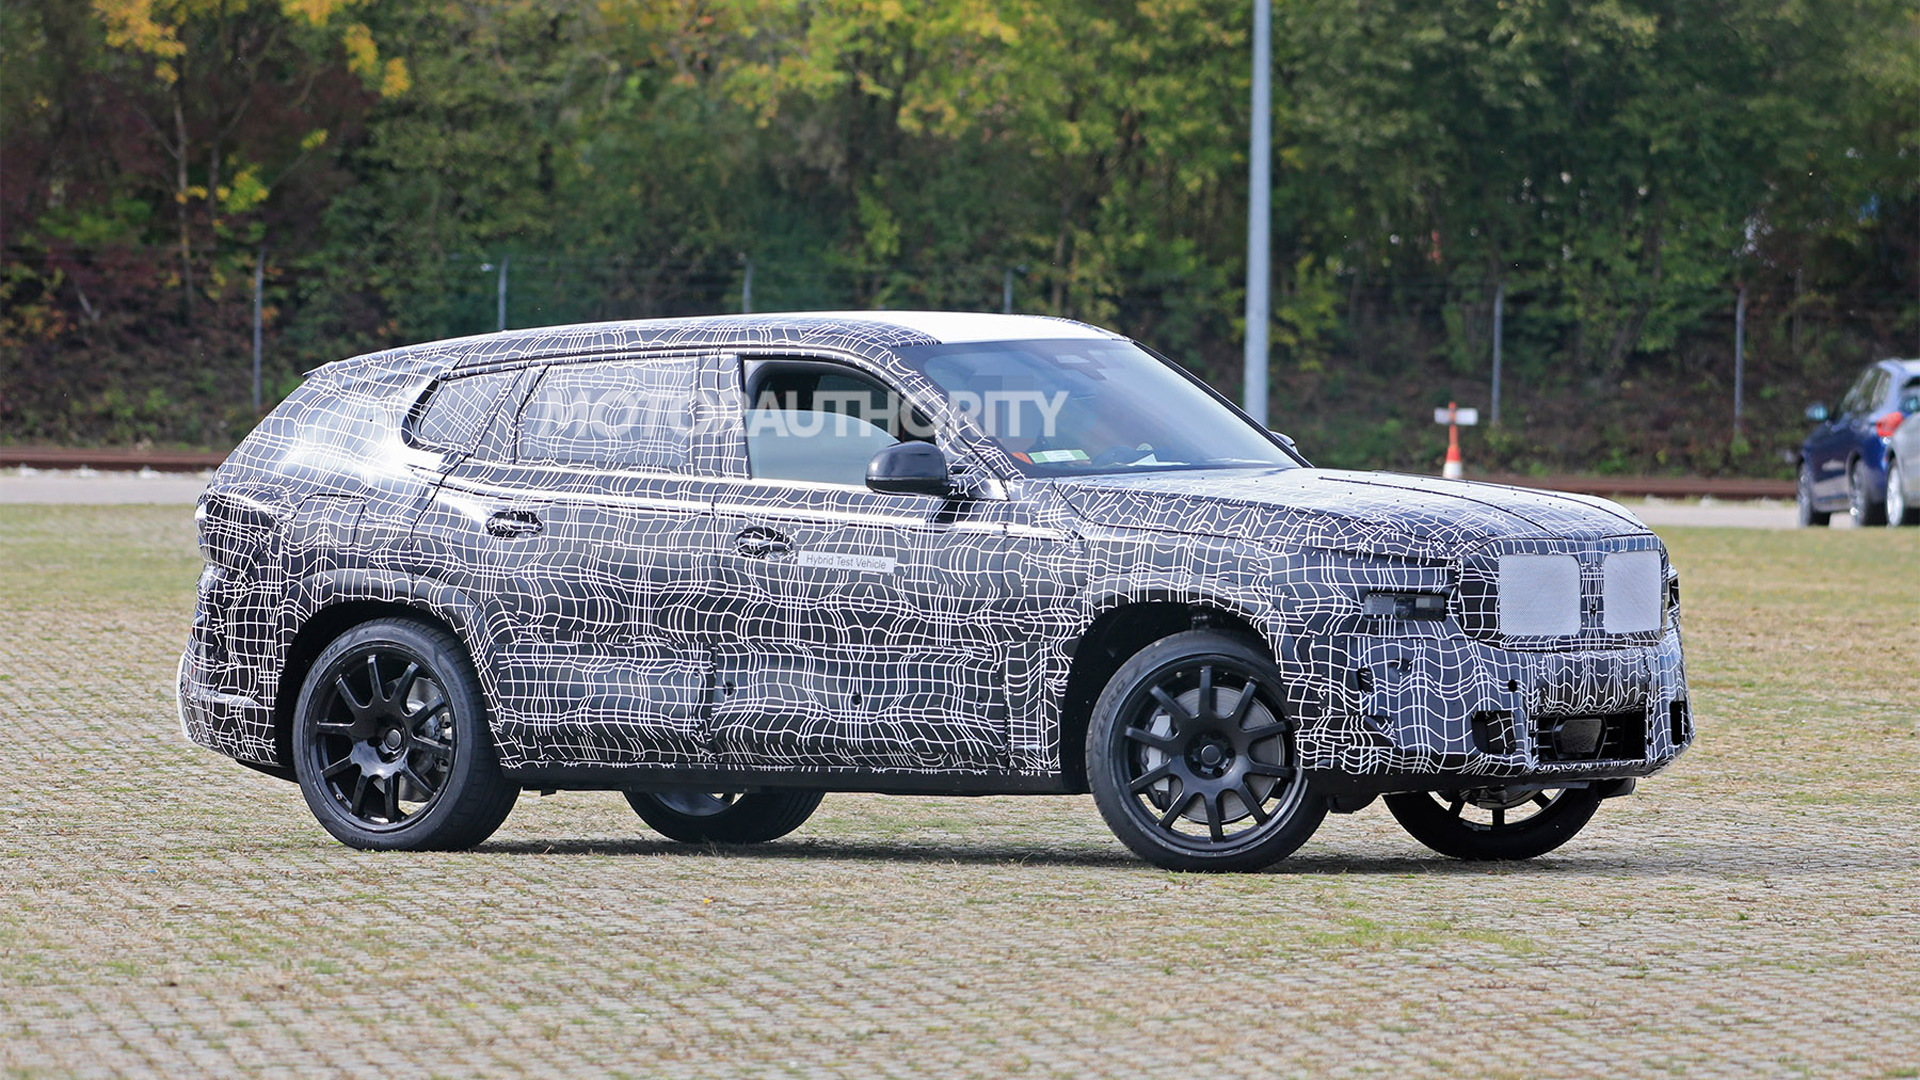 2023 BMW X8 spy shots - Photo credit: S. Baldauf / SB-Medien